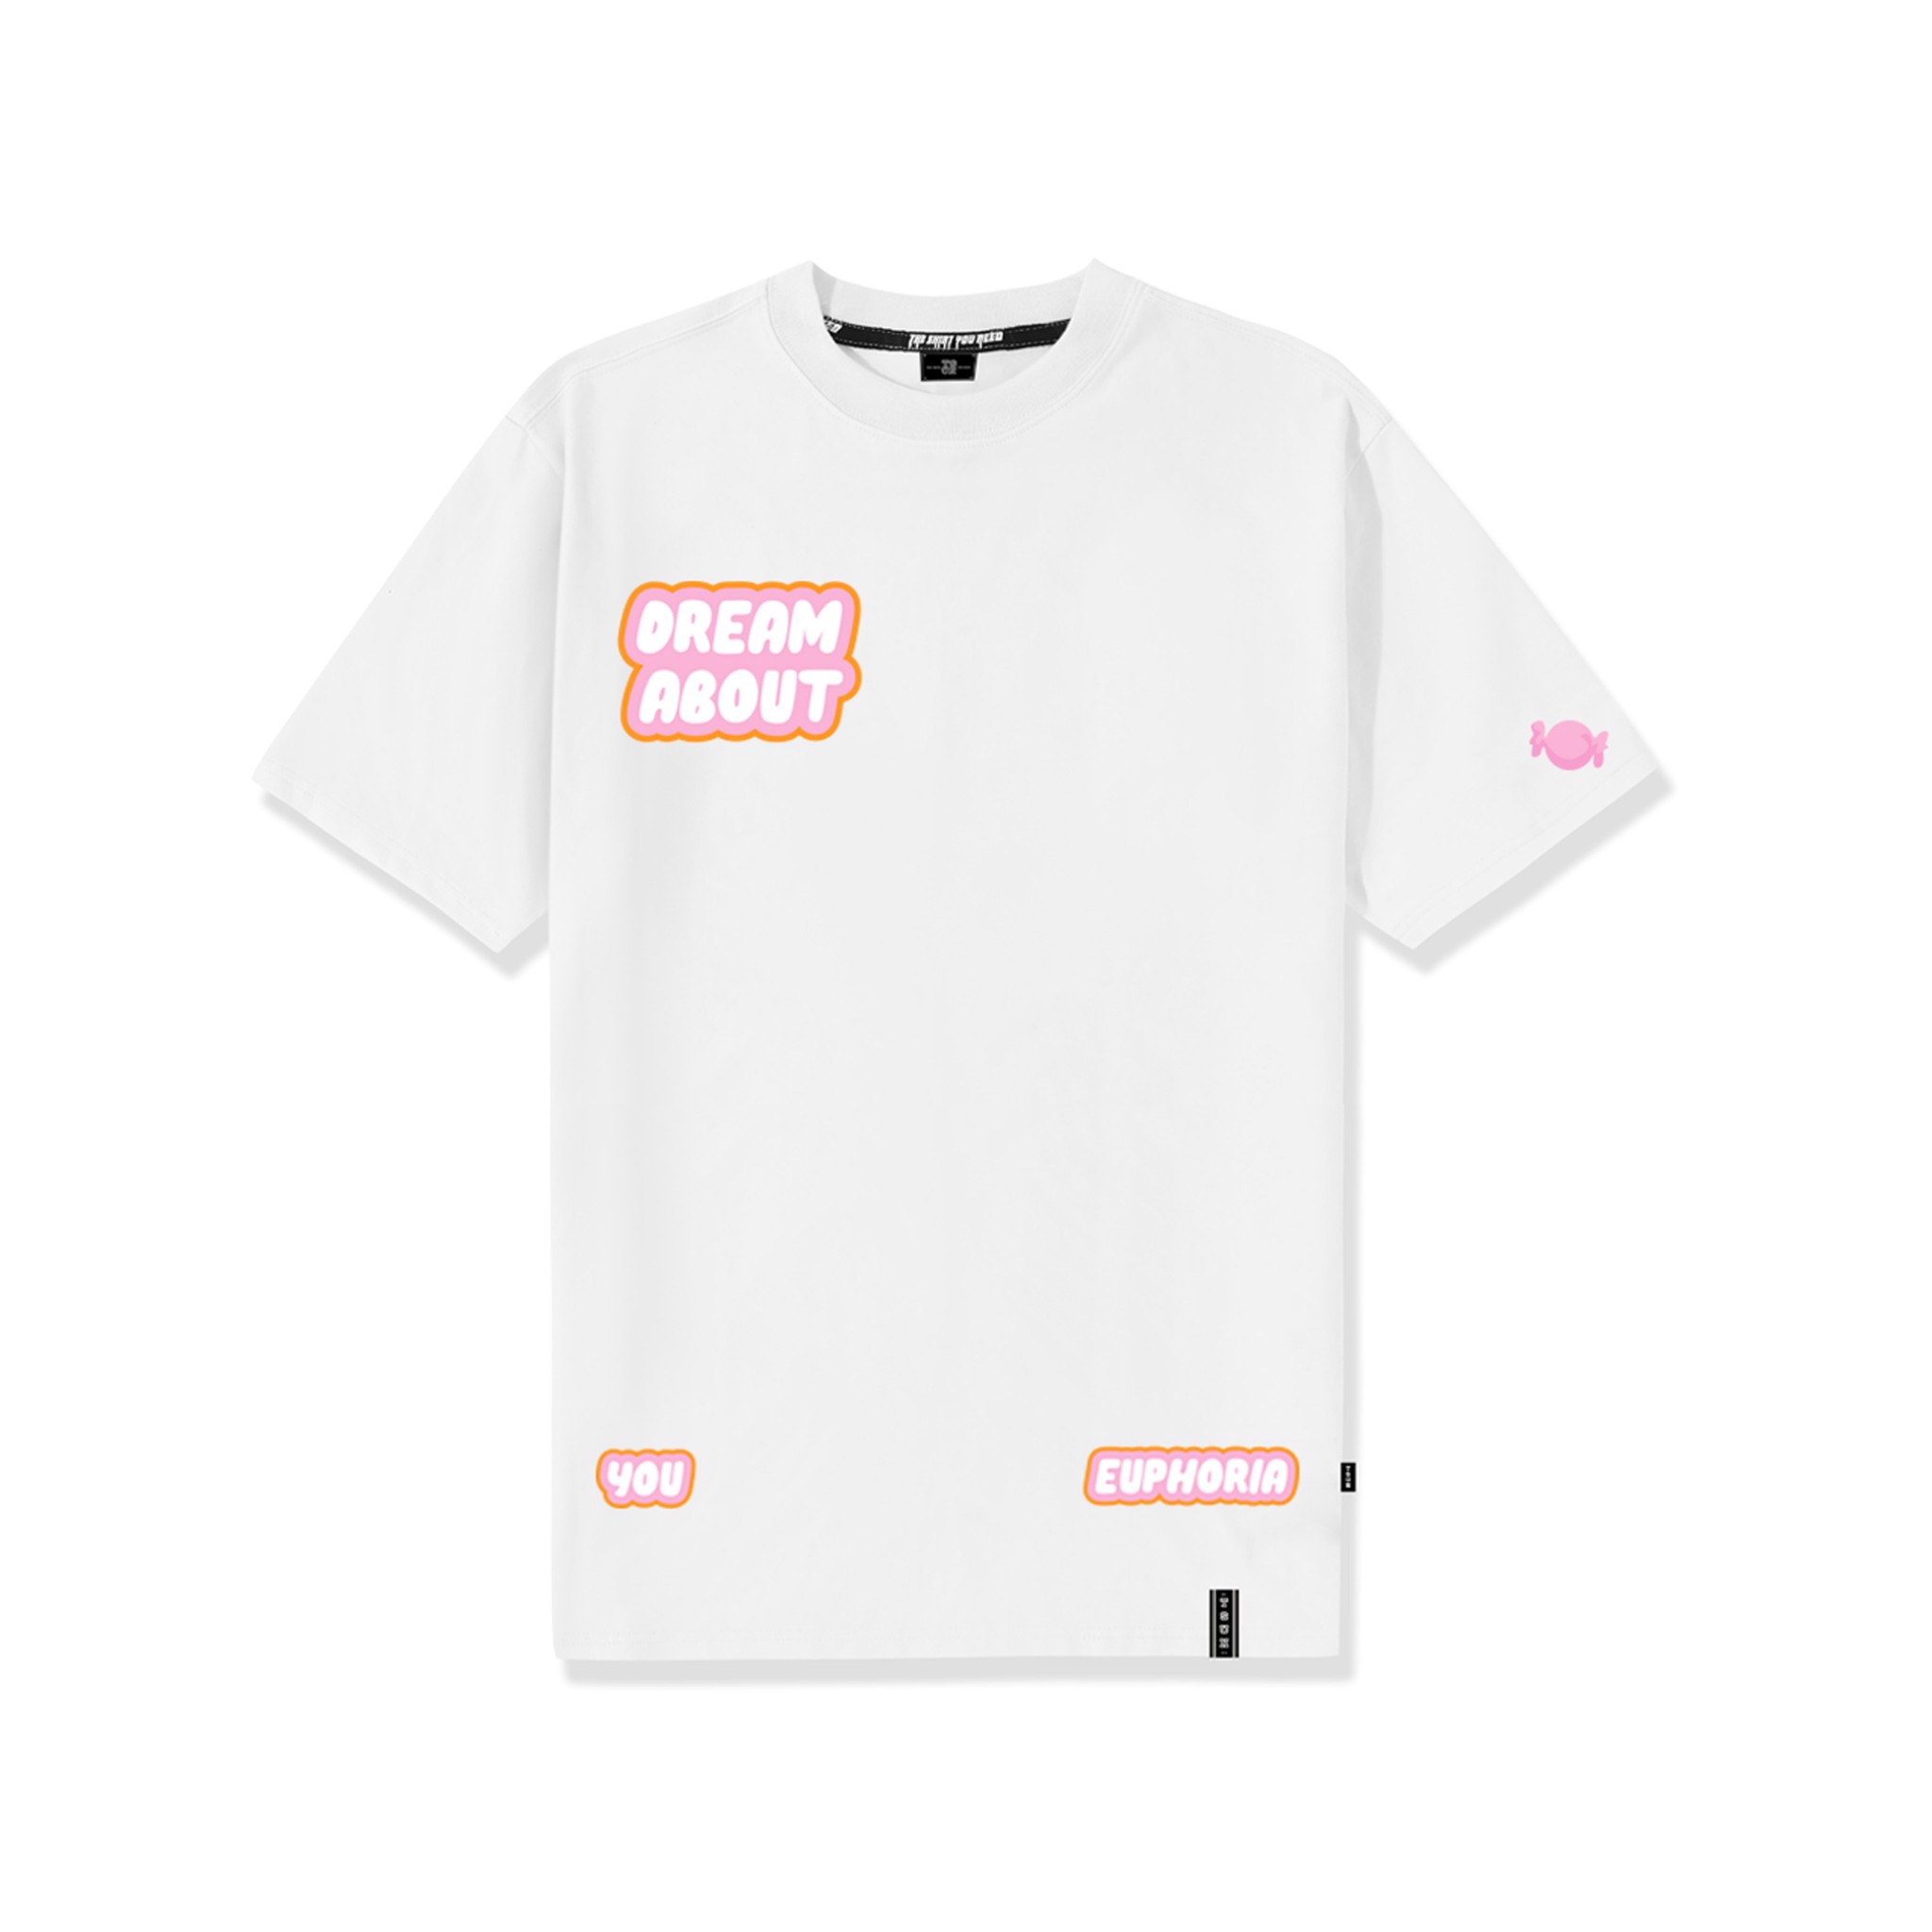 Dream Tee - White